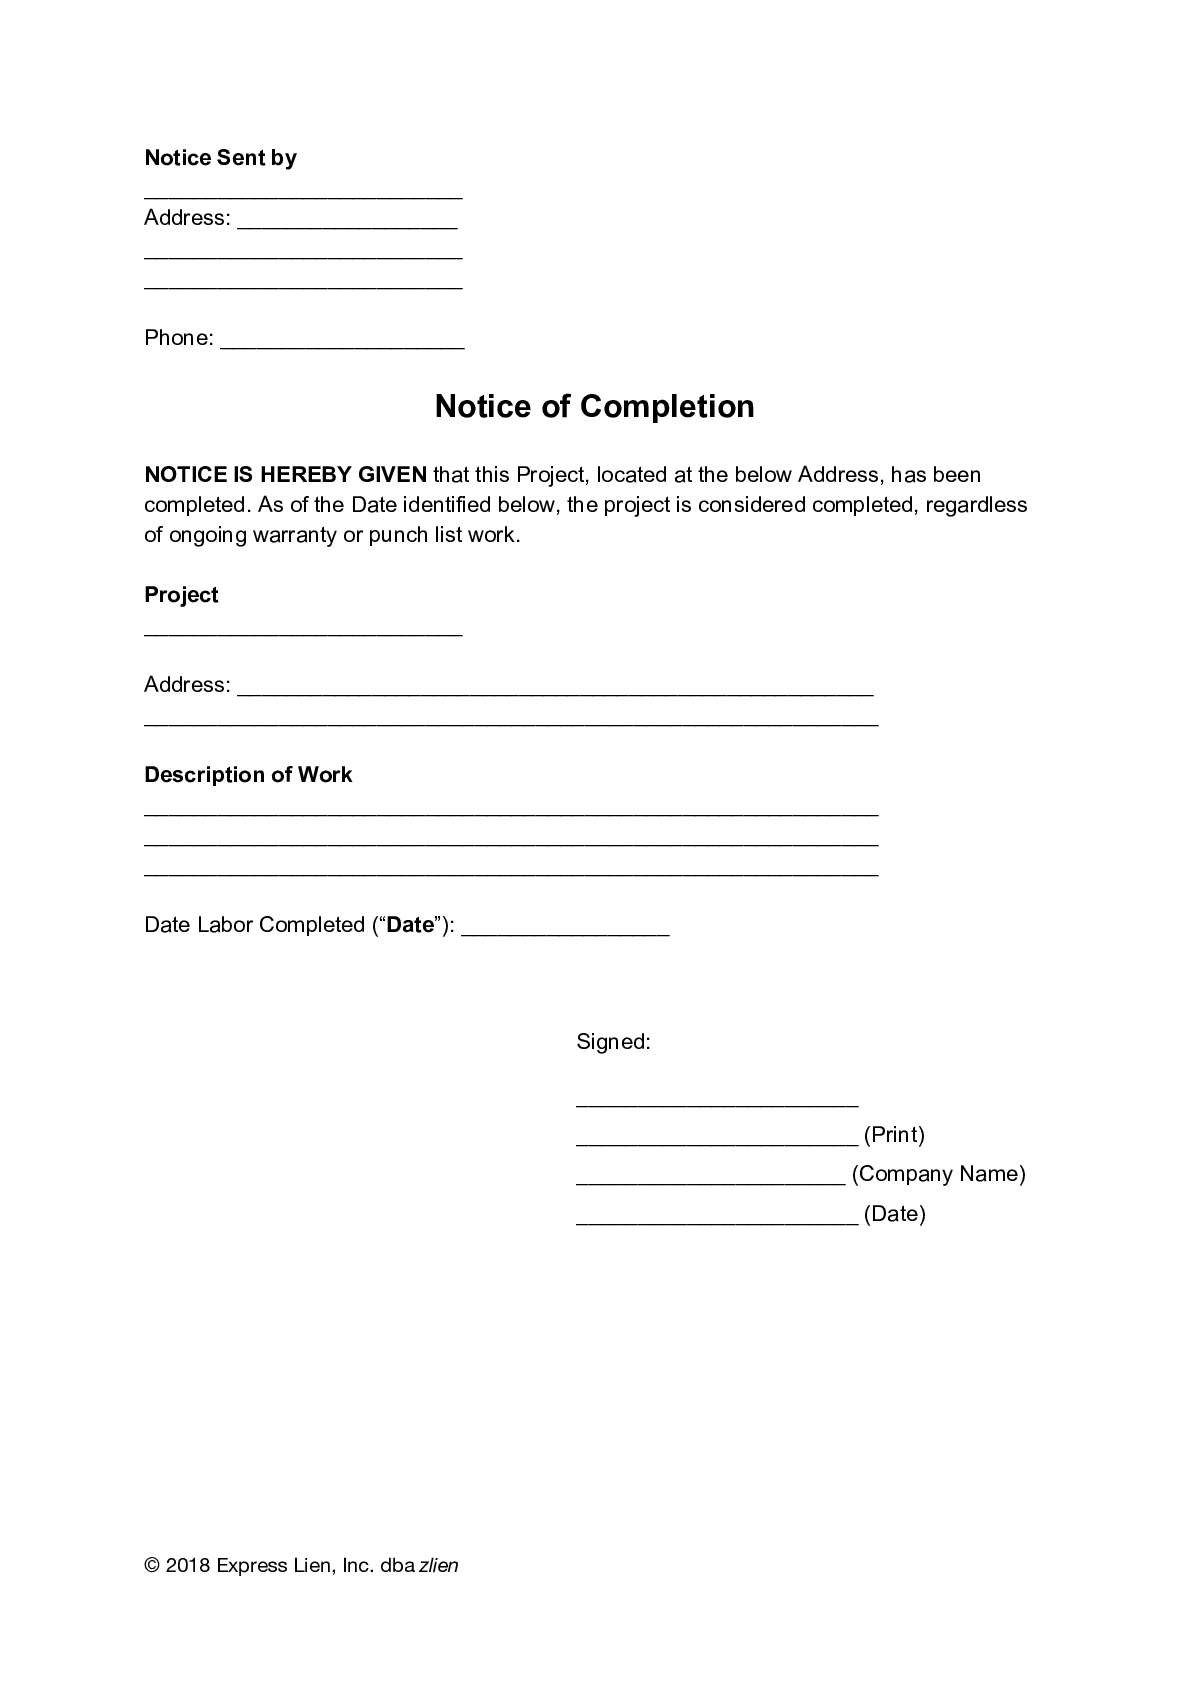 Notice of Completion (General) Form